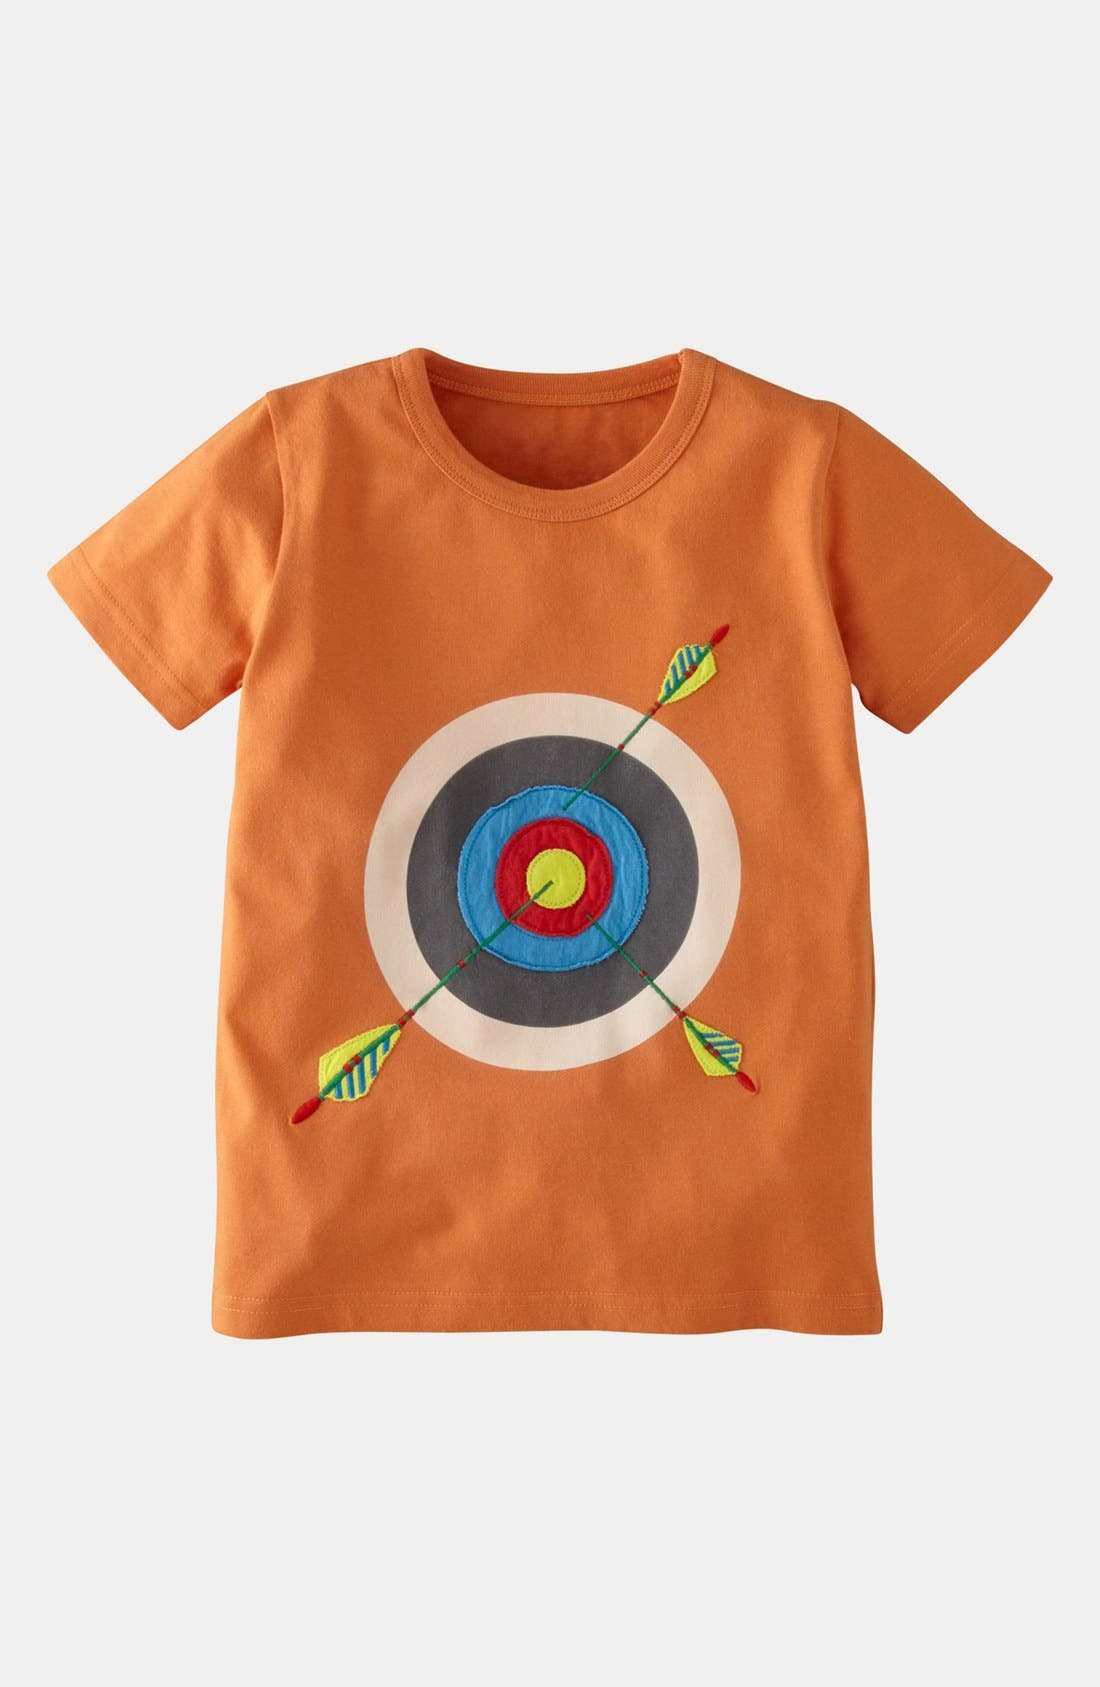 Alternate Image 1 Selected - Mini Boden 'Summer Sports' T-Shirt (Toddler, Little Boys & Big Boys)